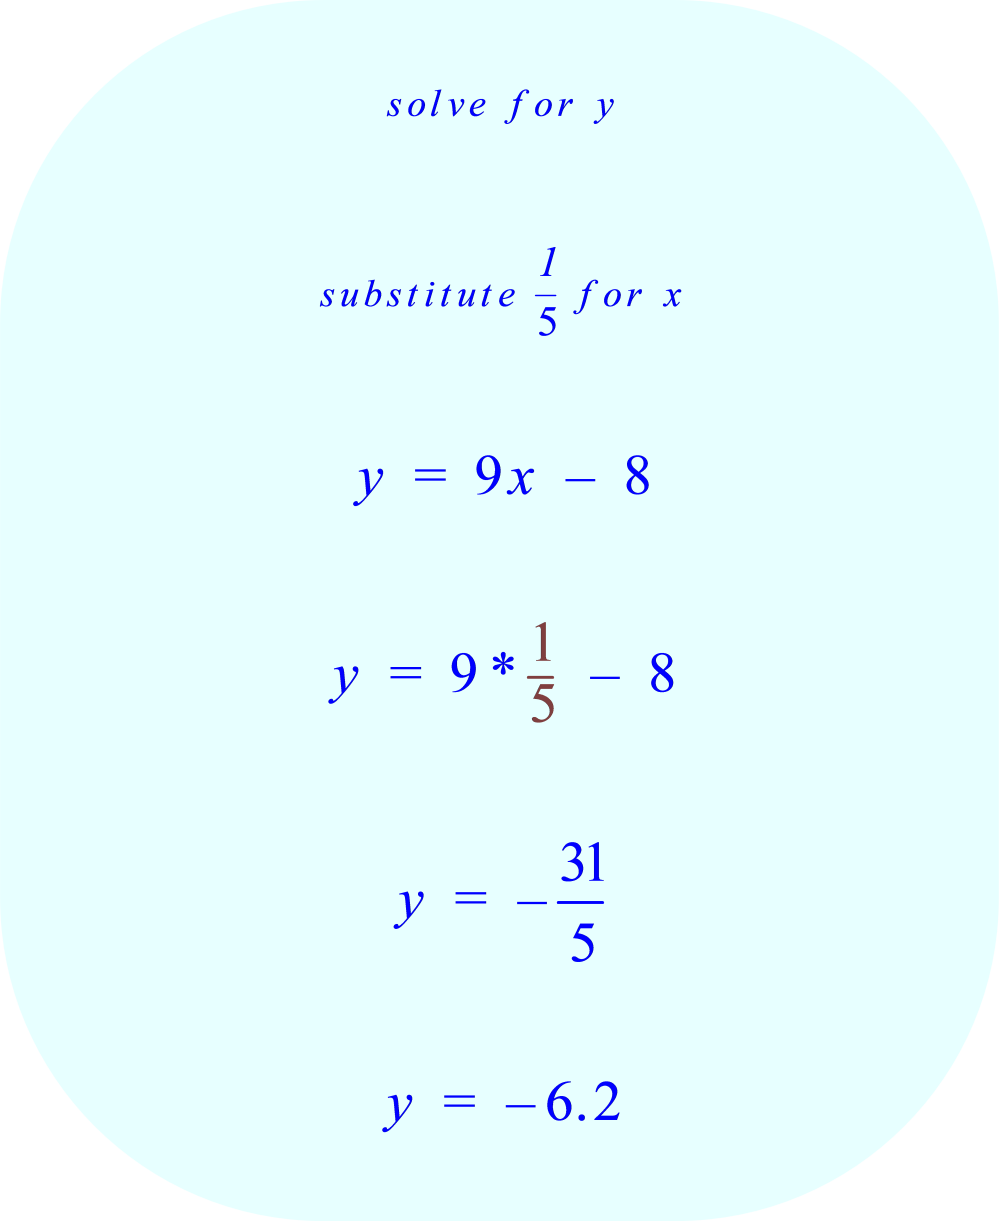 Substitute 1 / 5 for x and then compute y